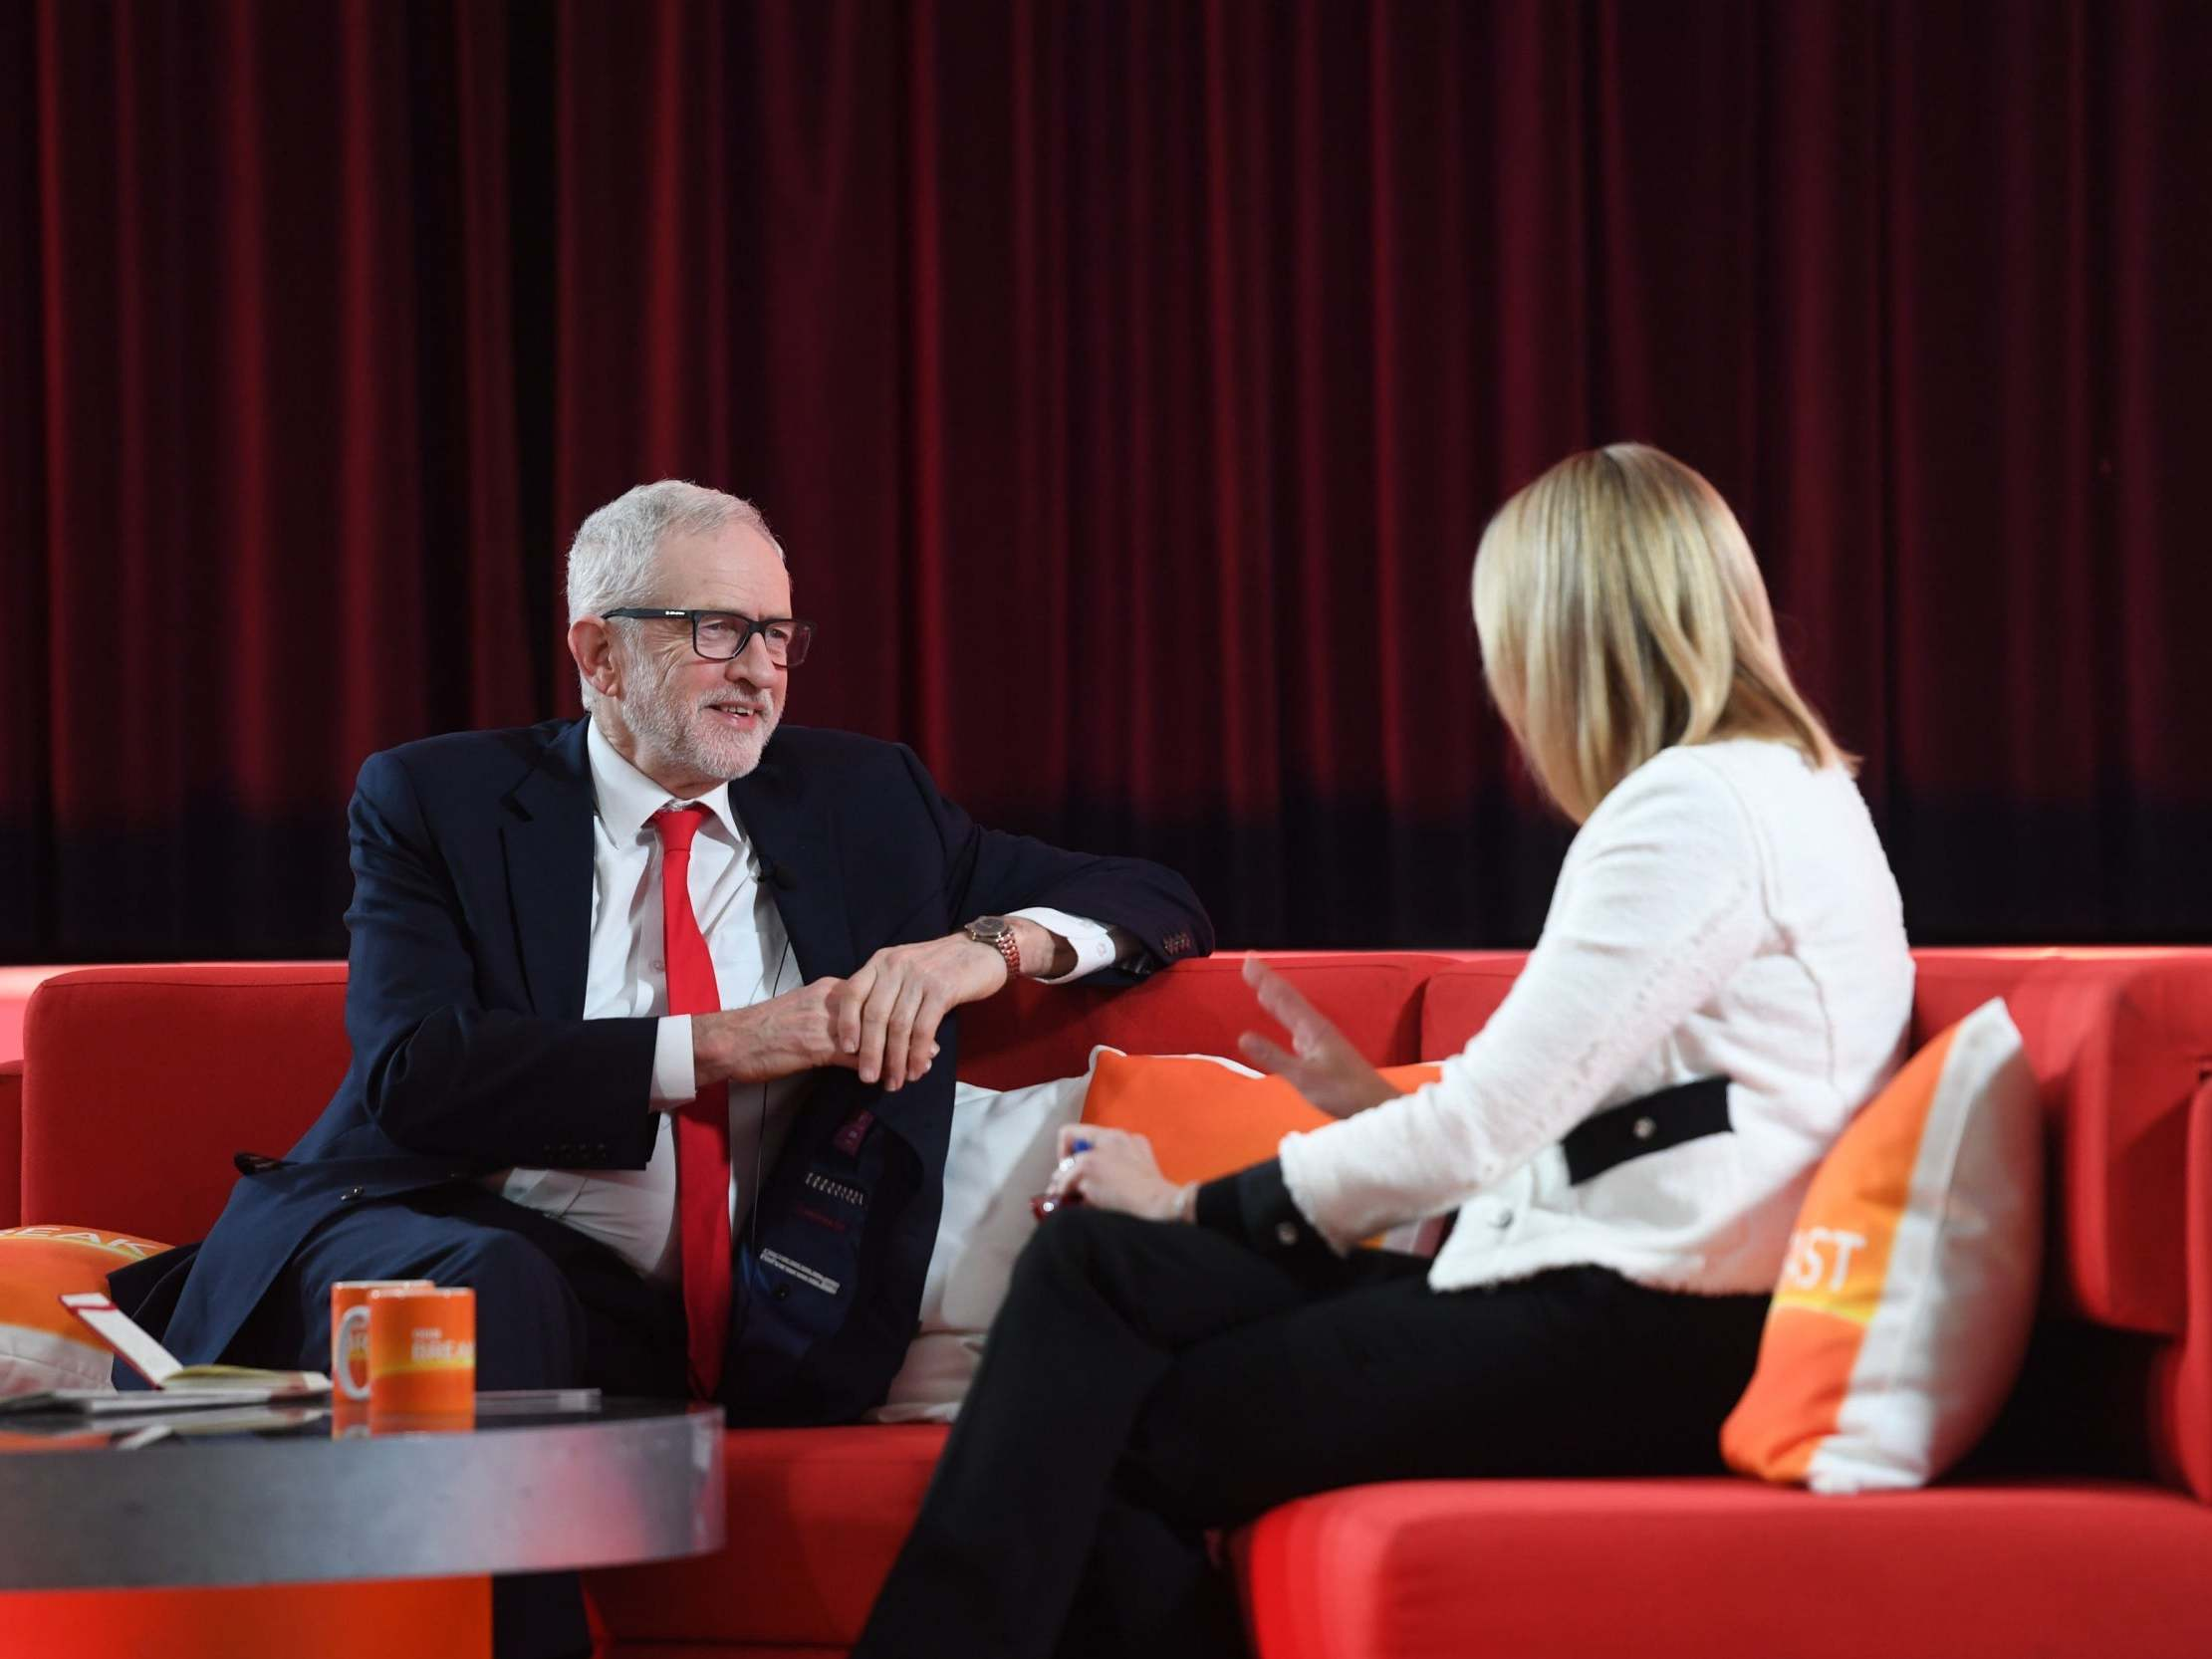 Jeremy Corbyn will appoint new team of Brexit negotiators backing 'both Leave and Remain' if Labour wins general election